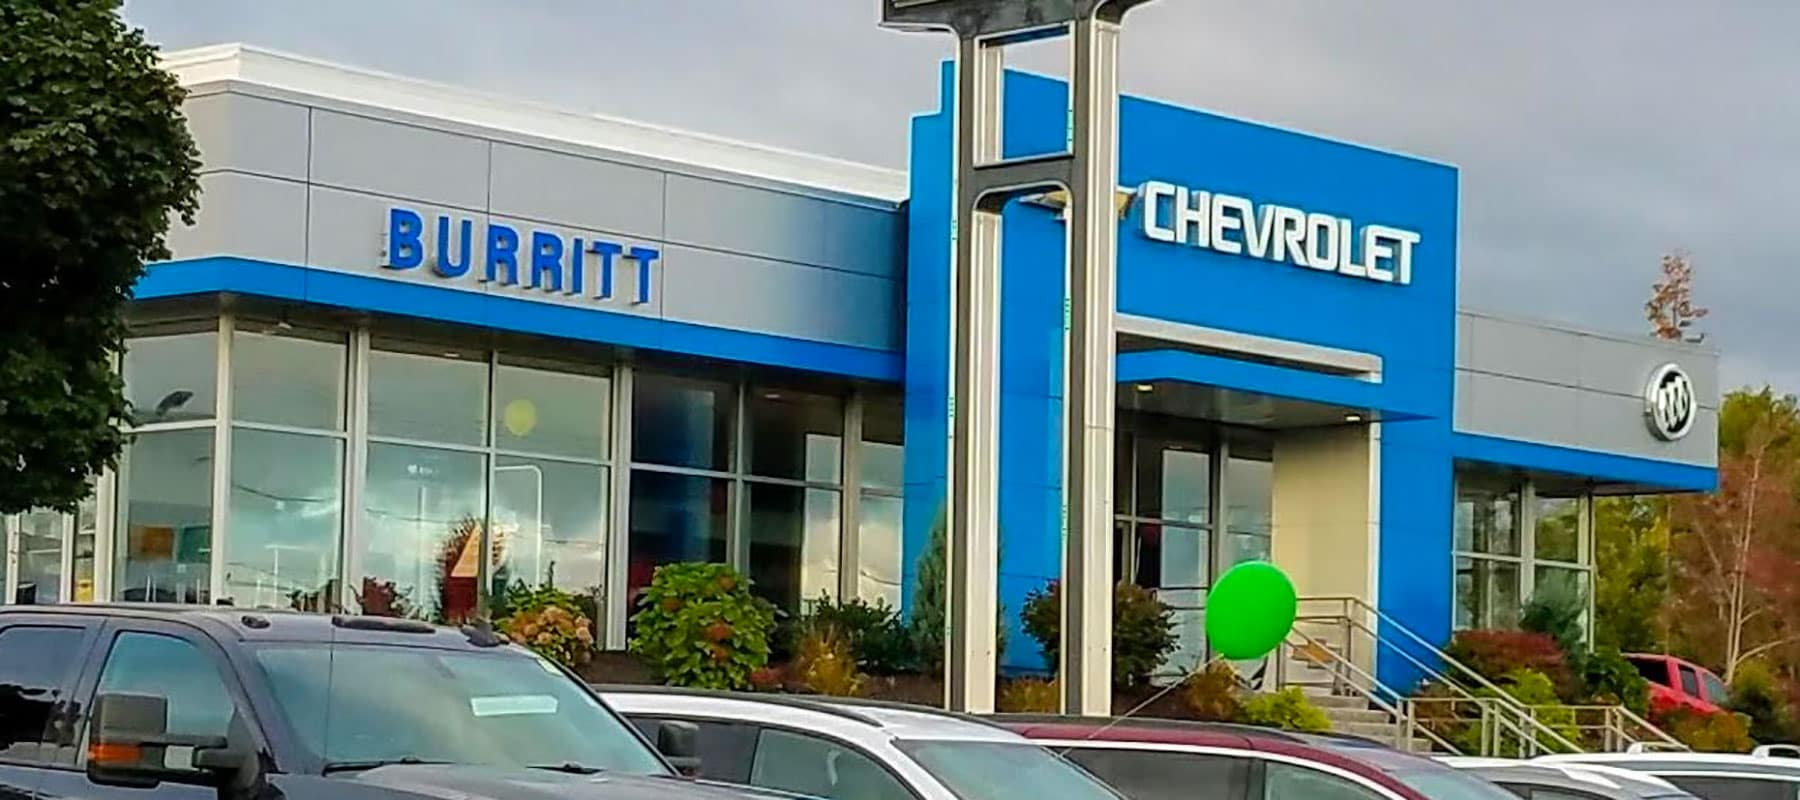 Photo of exterior of dealership